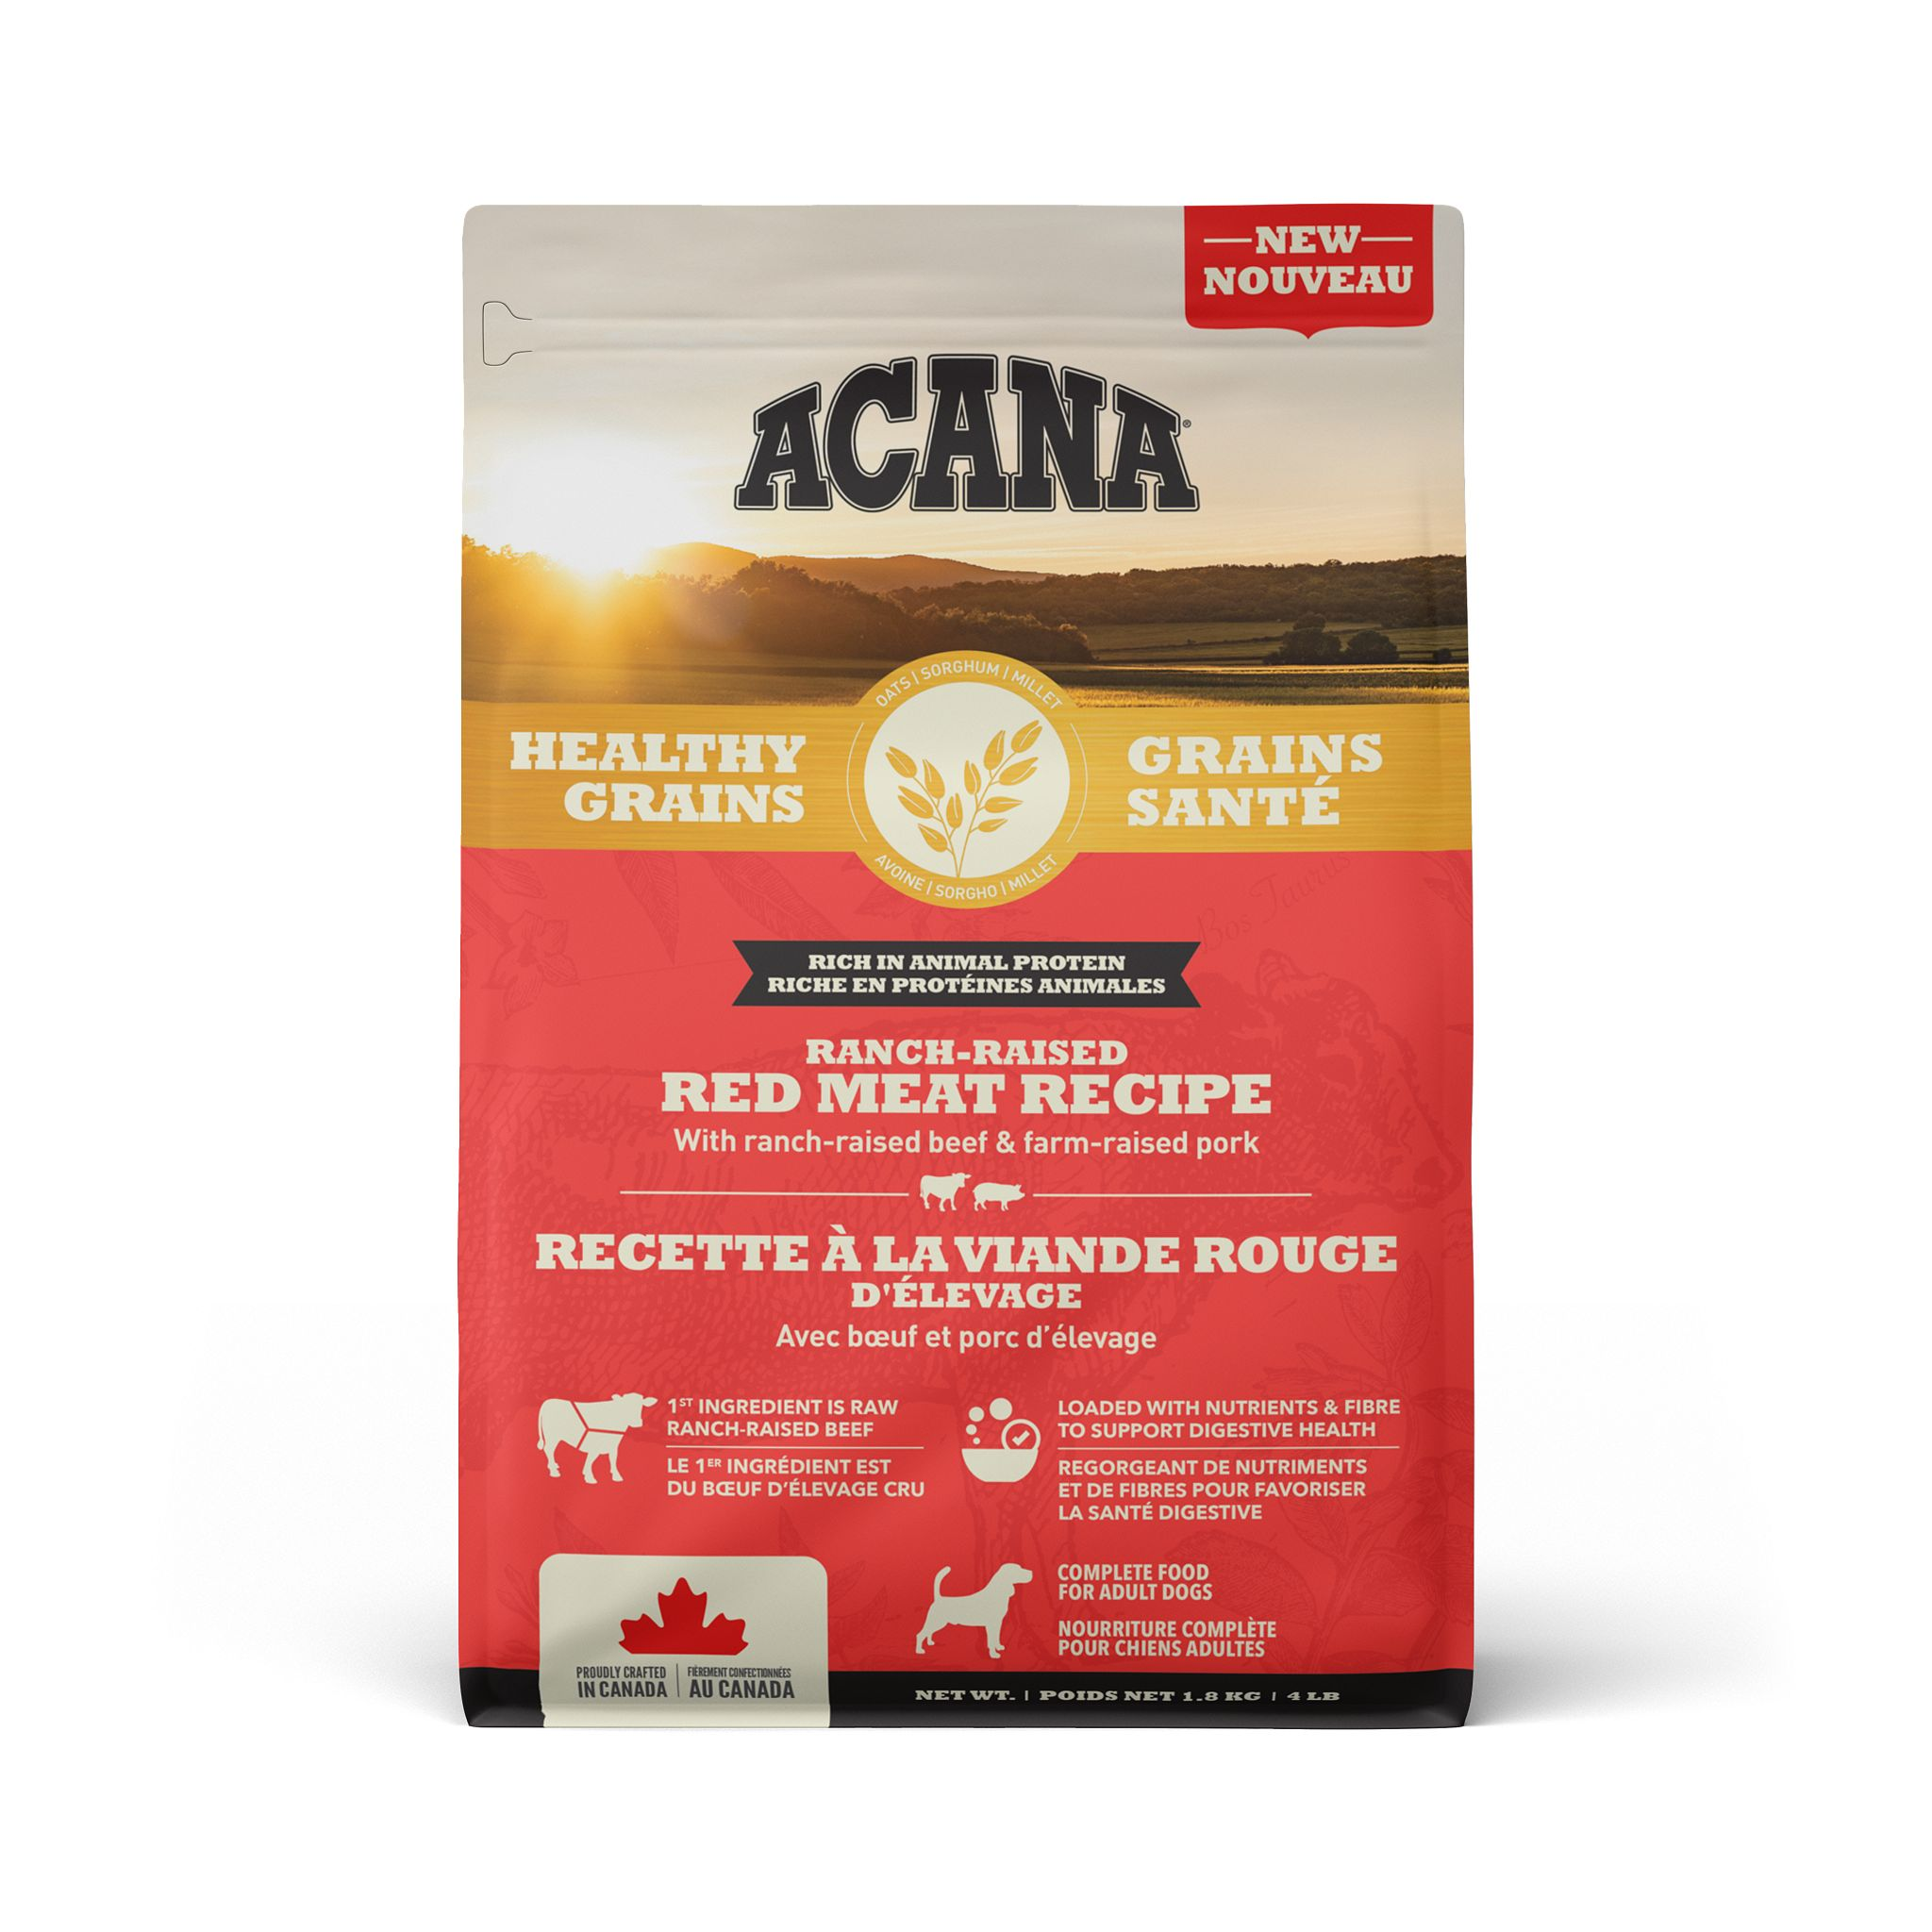 ACANA Healthy Grains Ranch-Raised Red Meat Recipe, 1.8-kg